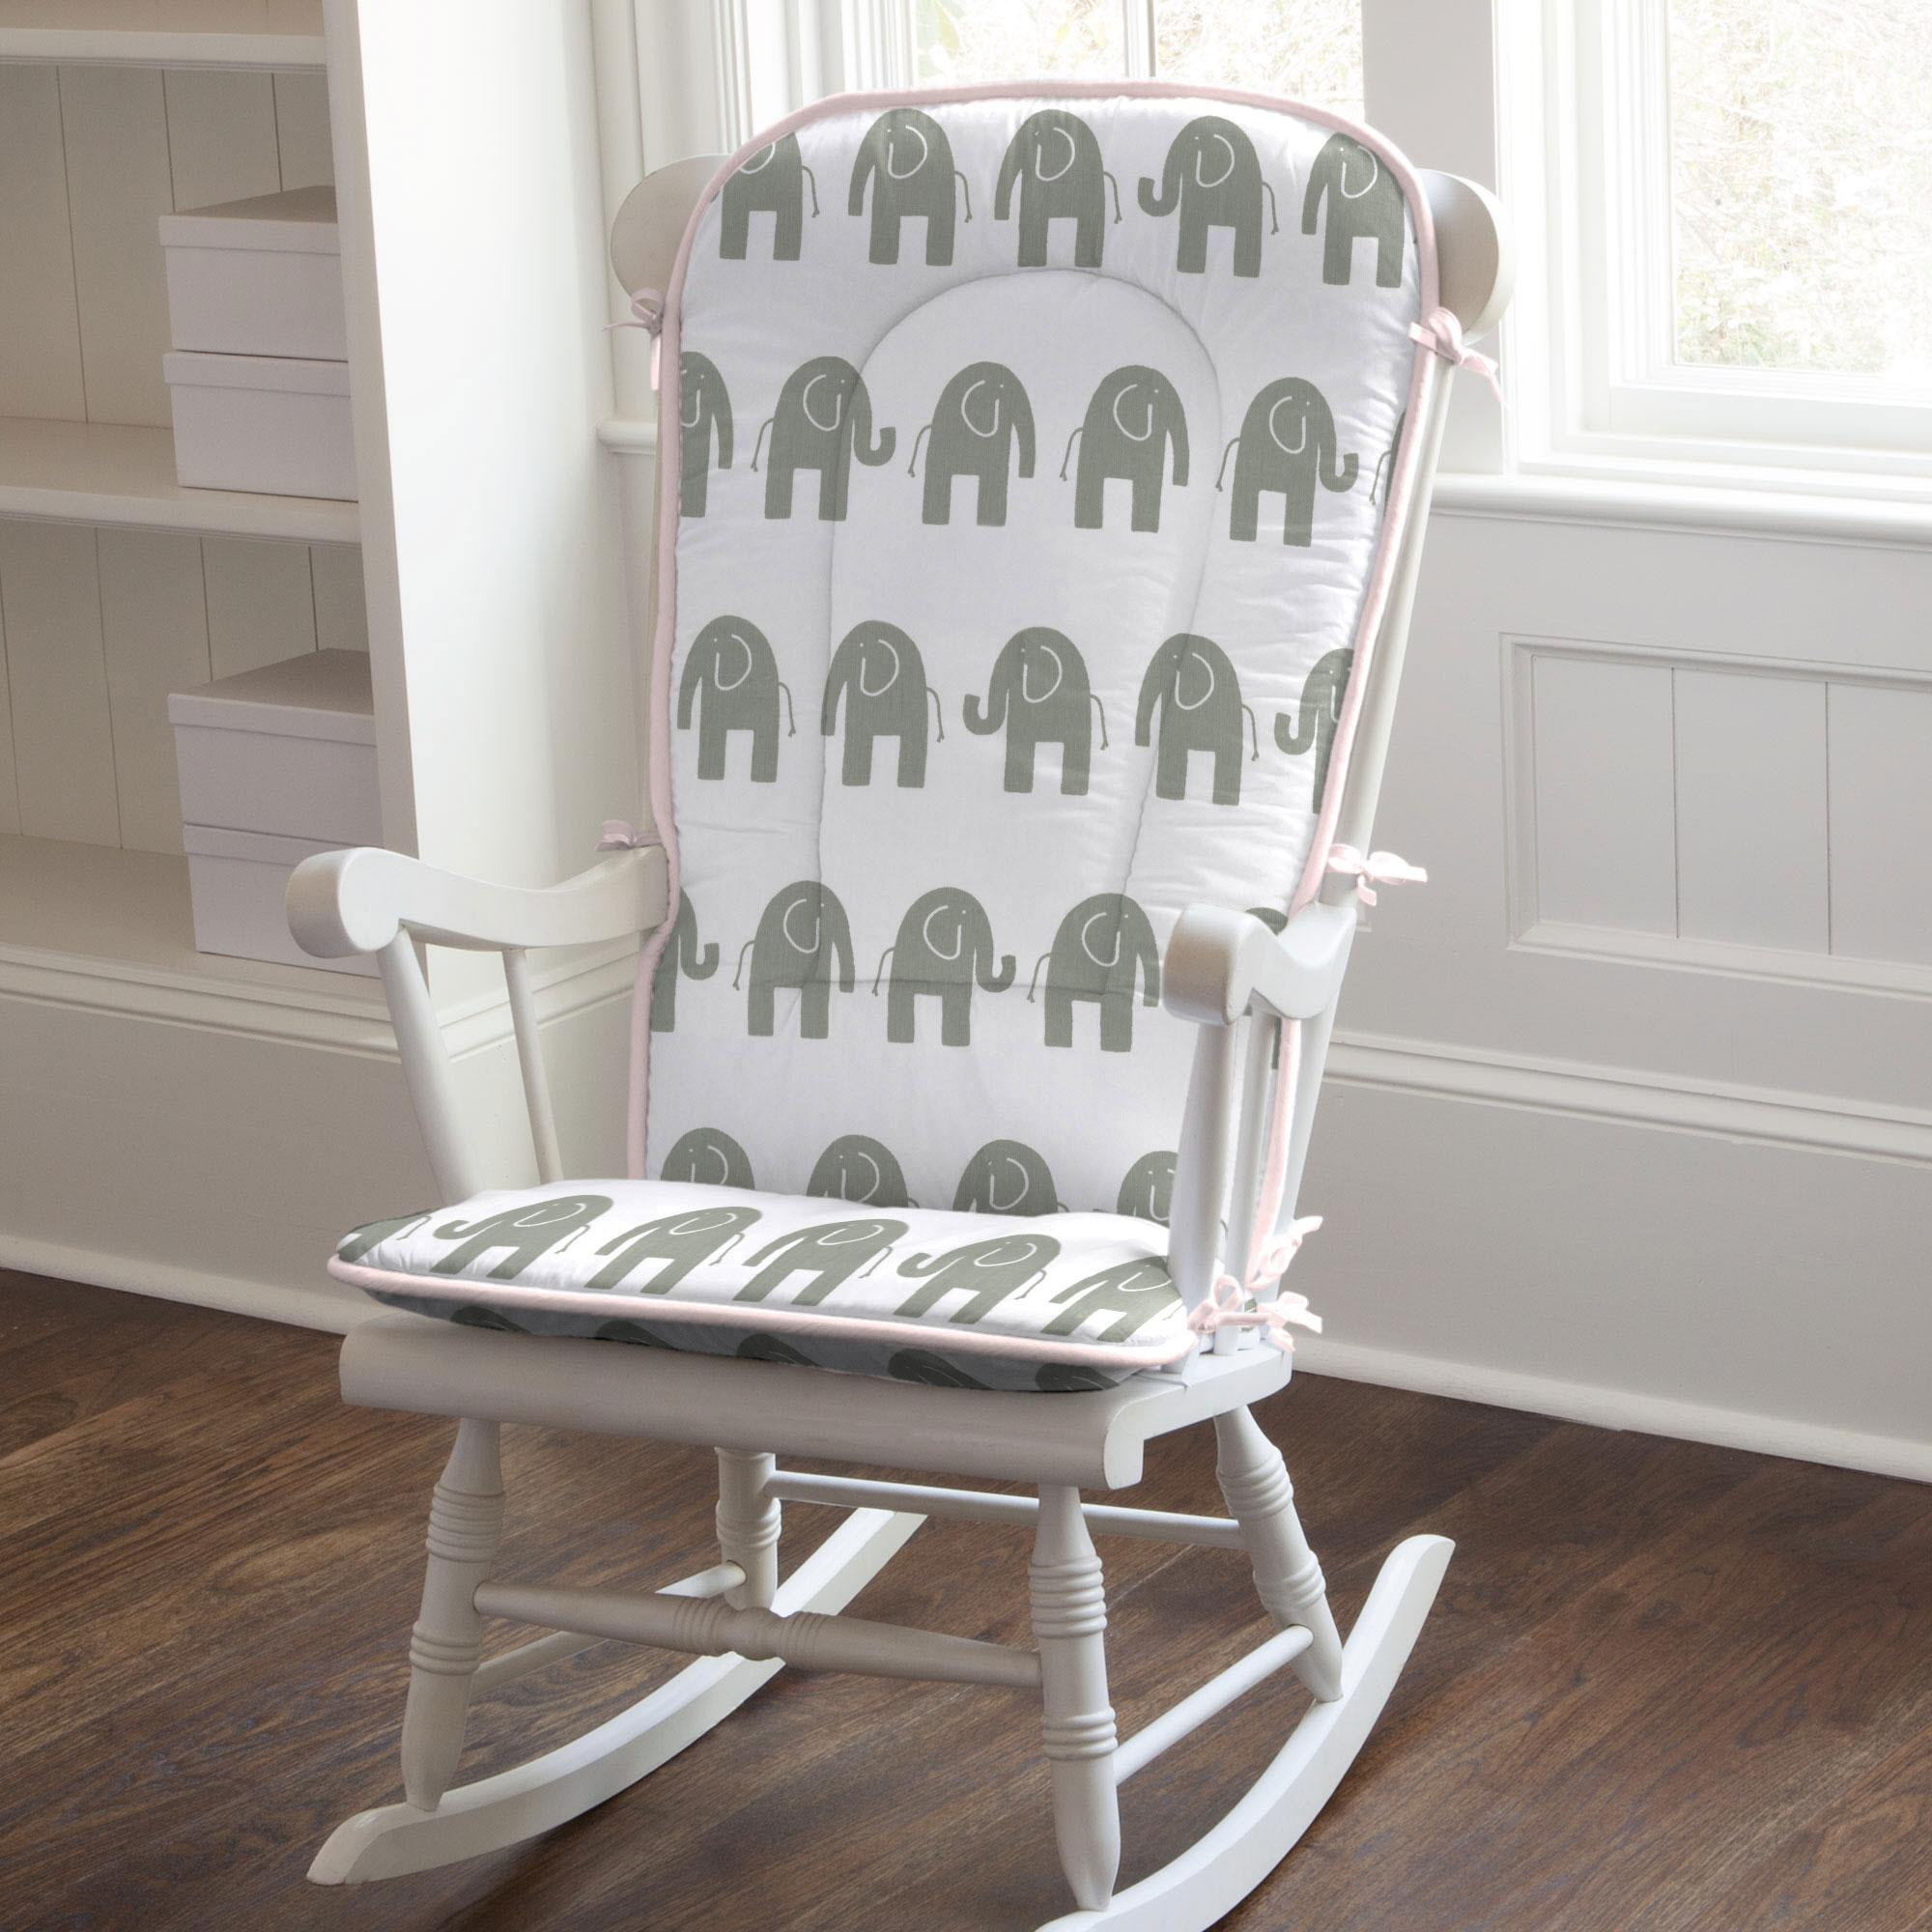 Rocking Chair Cushions Nursery | Rocking Chair Cushion | Rocking Chair Seat Cushion